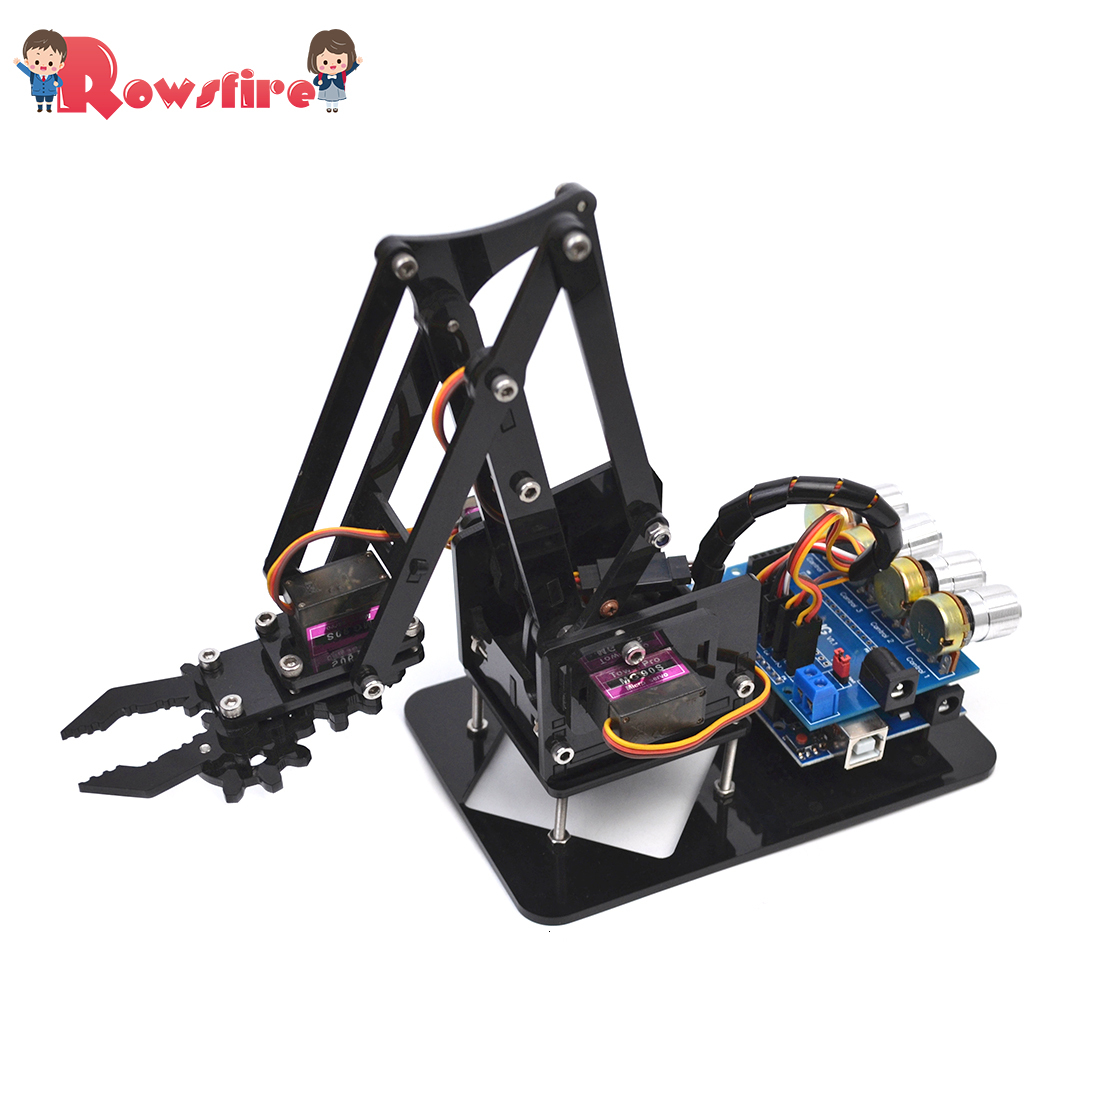 DIY Acrylic Robot Arm Robot Claw Arduino Kit 4DOF Mechanical Grab Manipulator